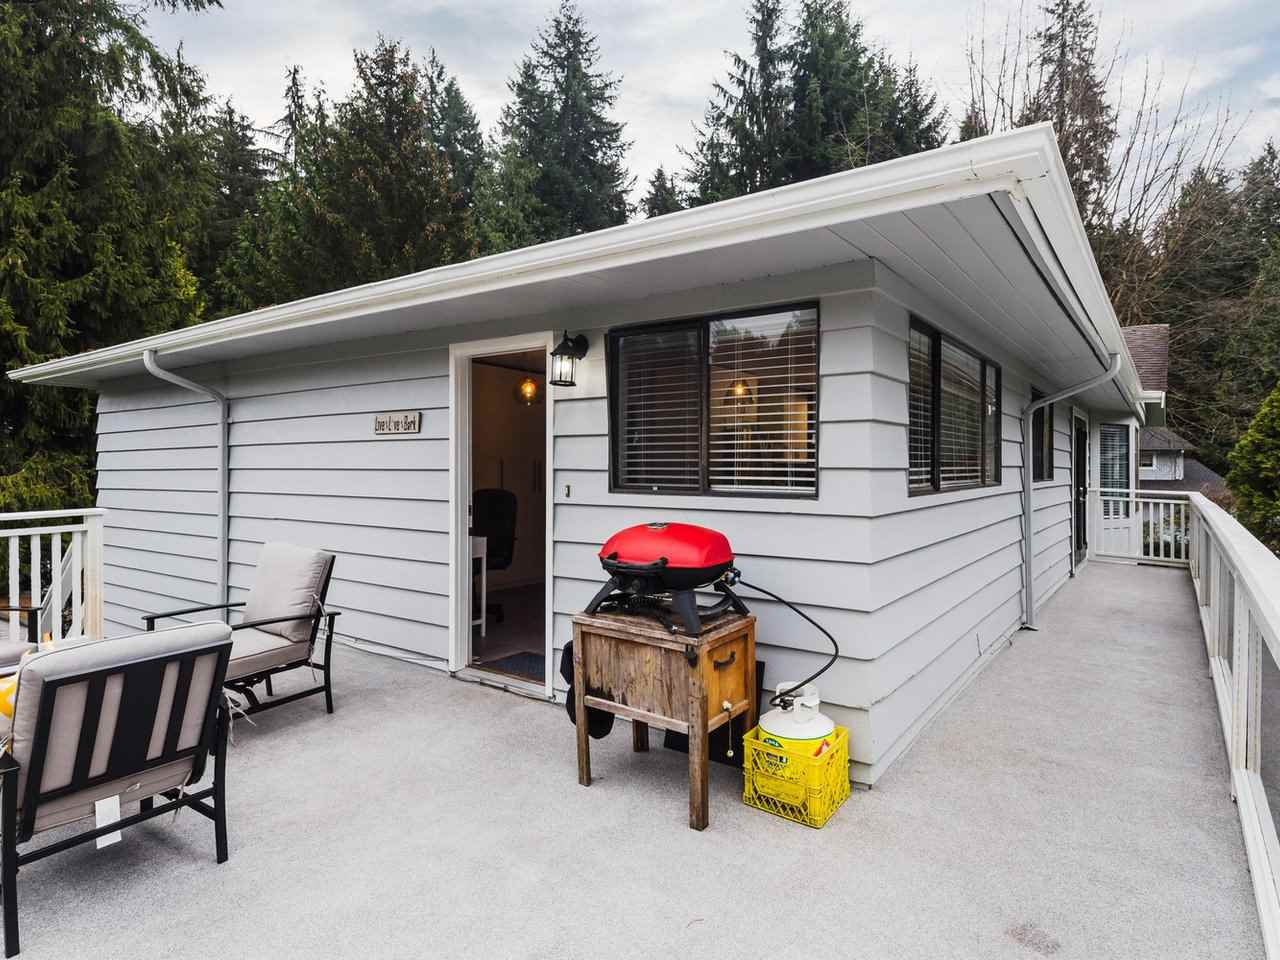 951 HENDECOURT PLACE - Lynn Valley House/Single Family for sale, 4 Bedrooms (R2558686) - #13